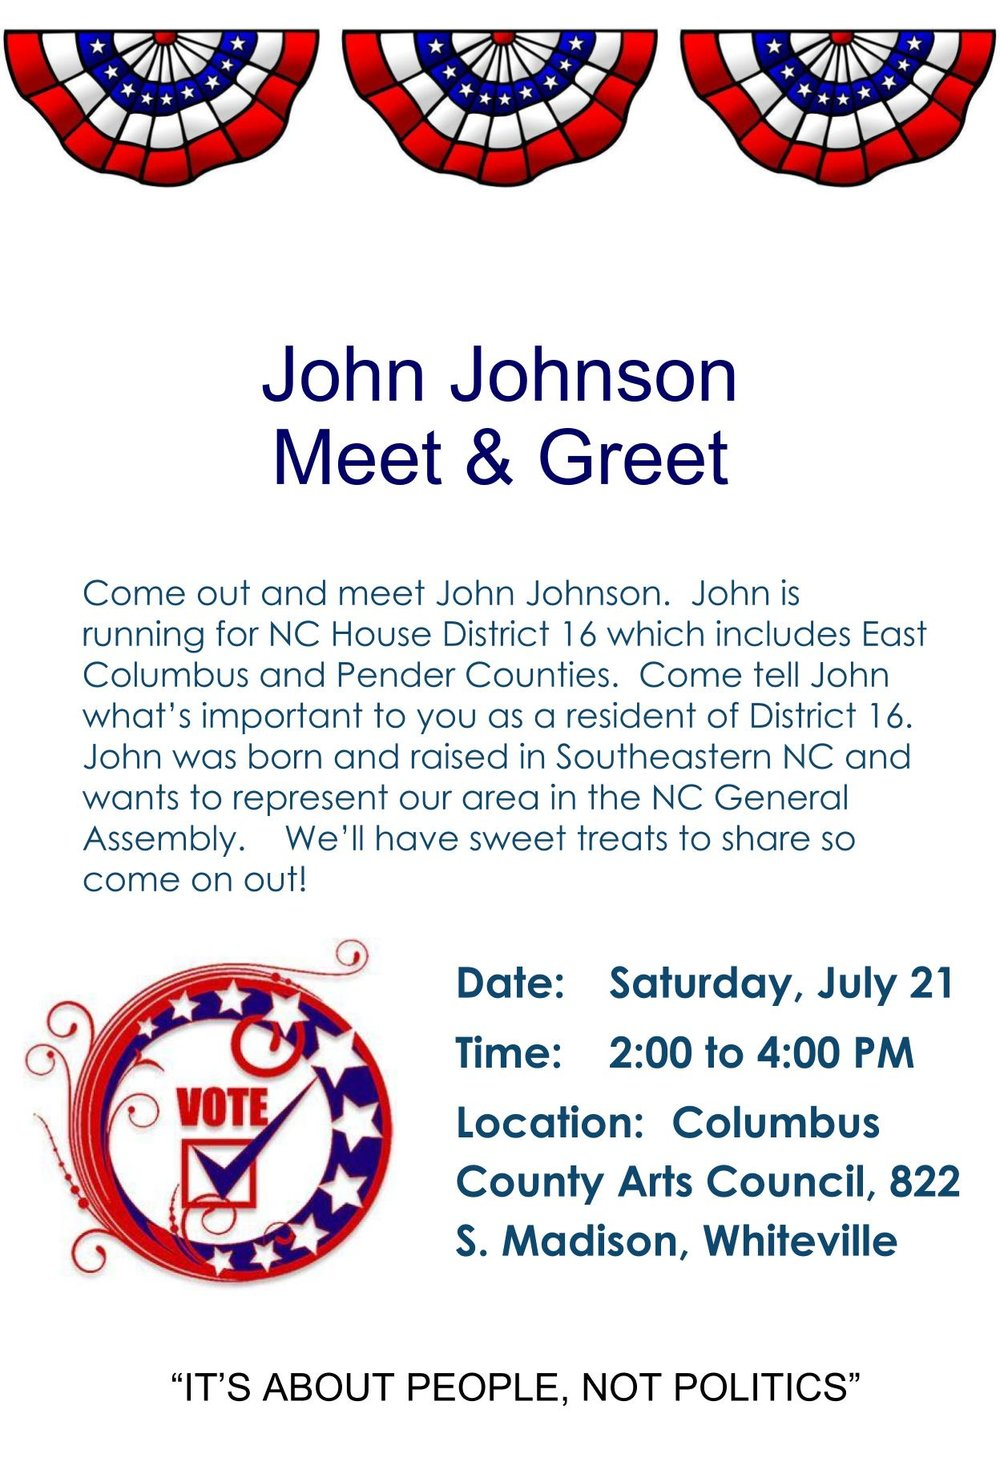 John Johnson Meet & Greet 4.pptx.jpg